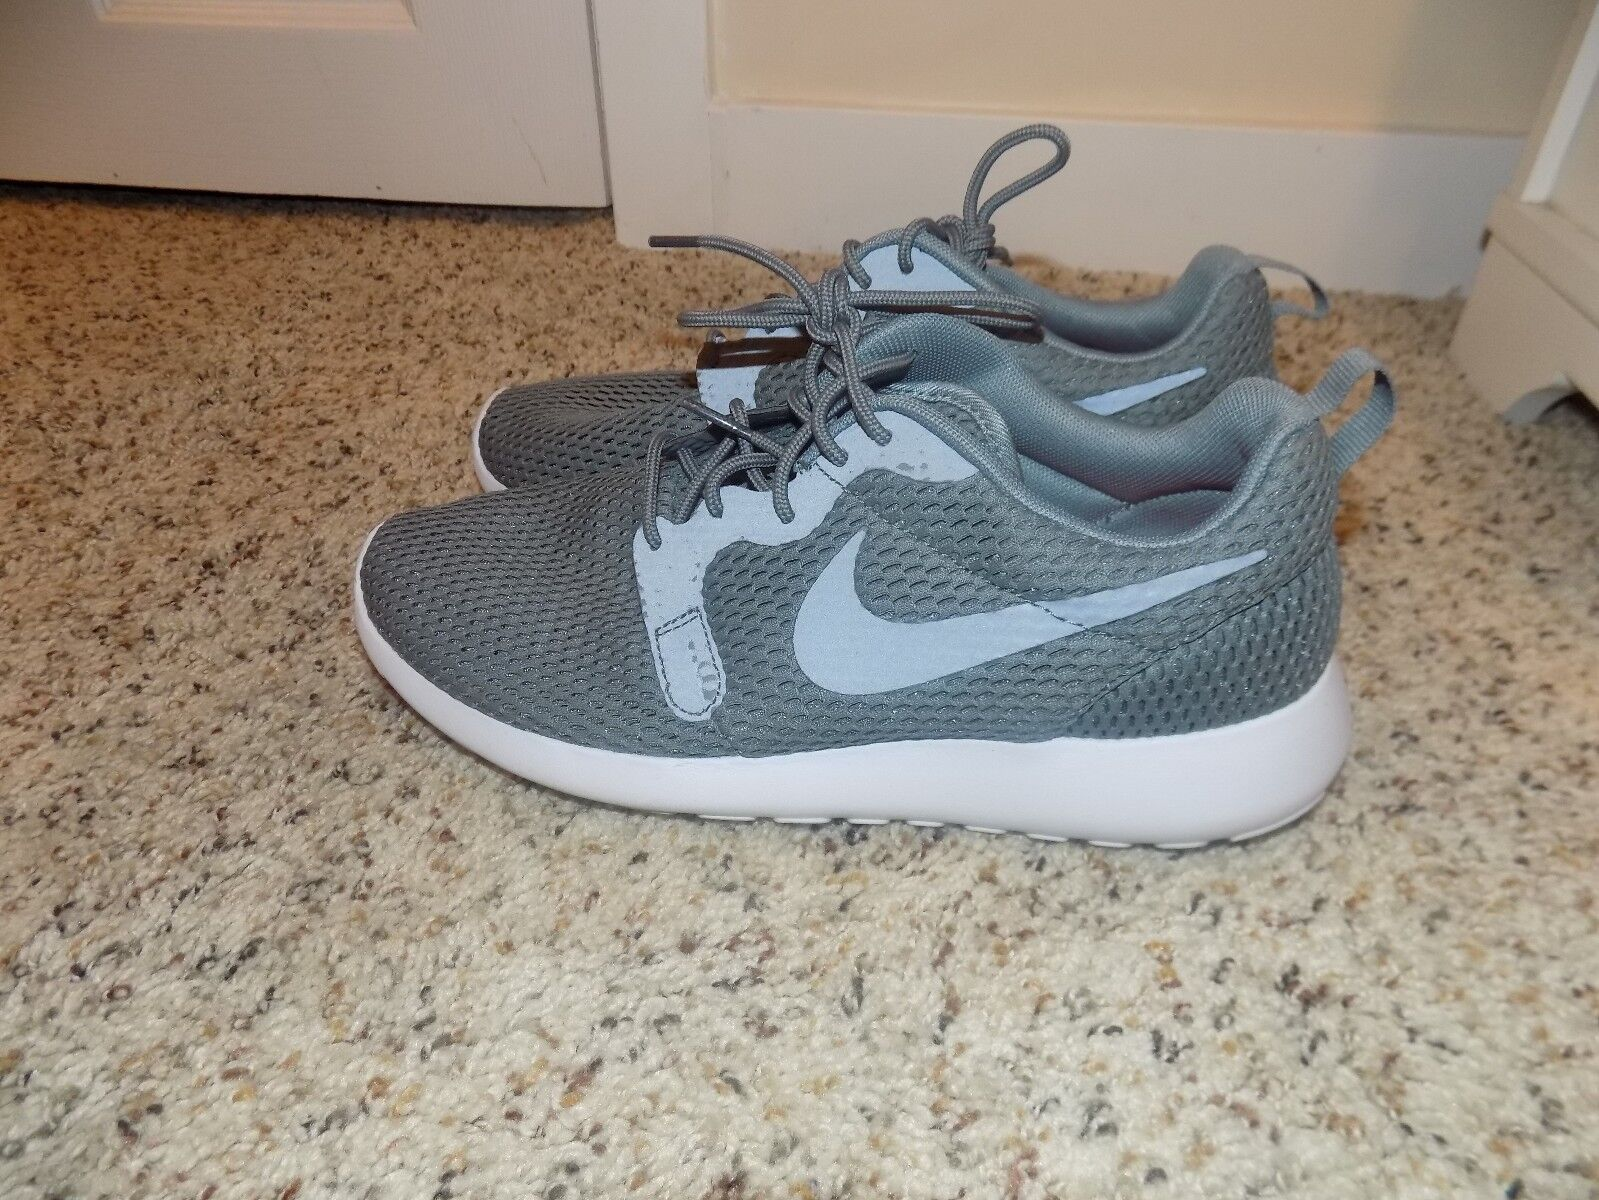 quality design e609a 41068 ... Nike Roshe One Hyperfuse Cool Gray Gray Gray and White Men s Sneakers  in Size 7- ...